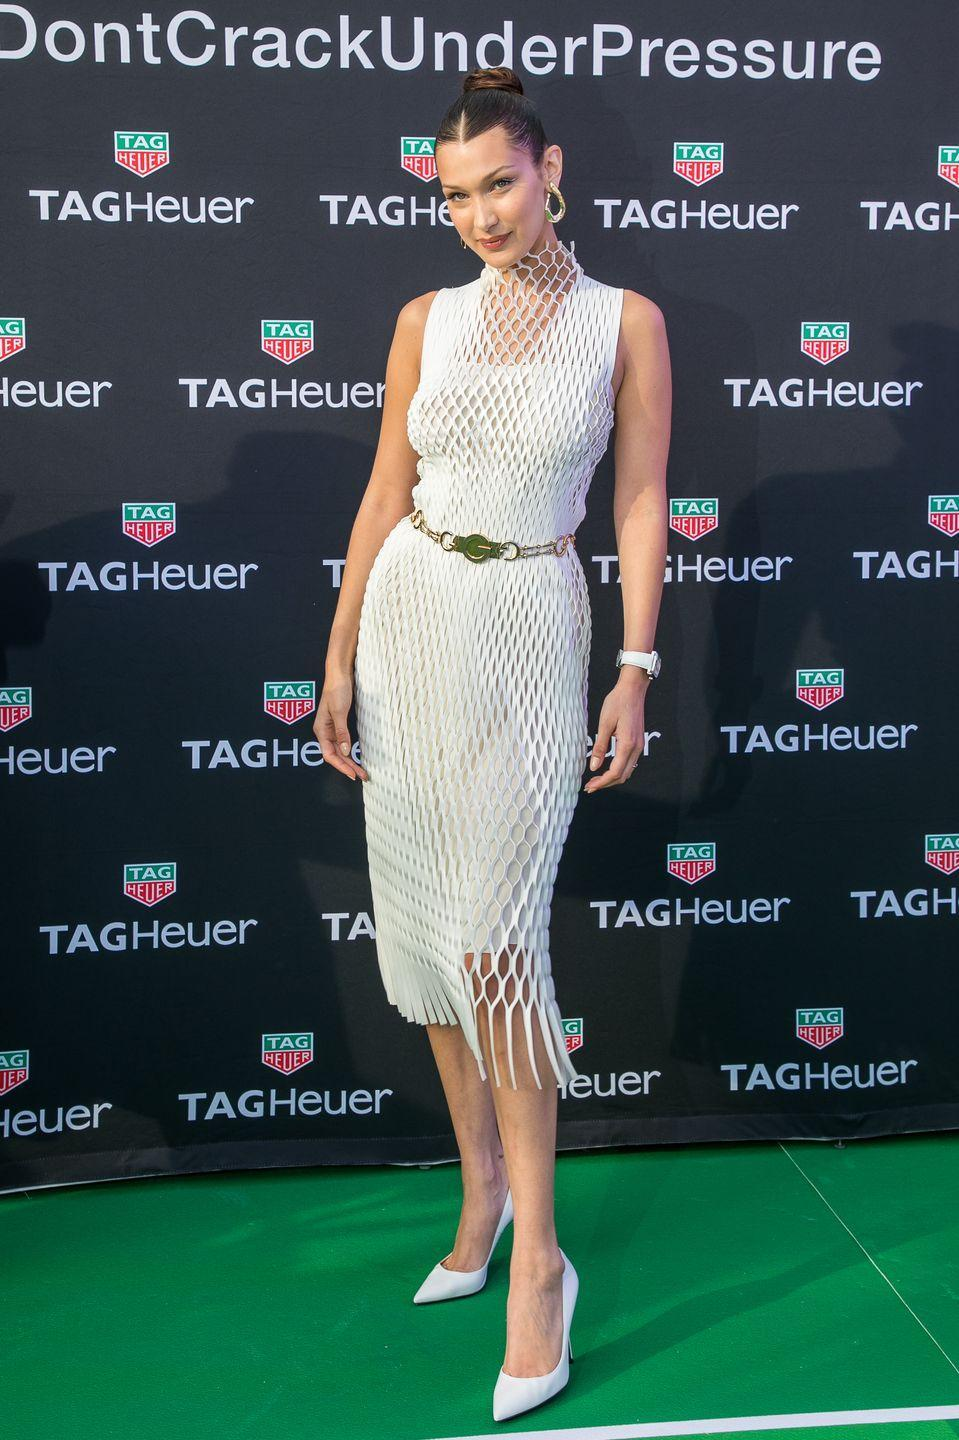 <p>Hadid attended a Tag Heuer party during the Monaco Grand Prix wearing a white netted halter-neck dress and matching stilletos, May 2018.</p>